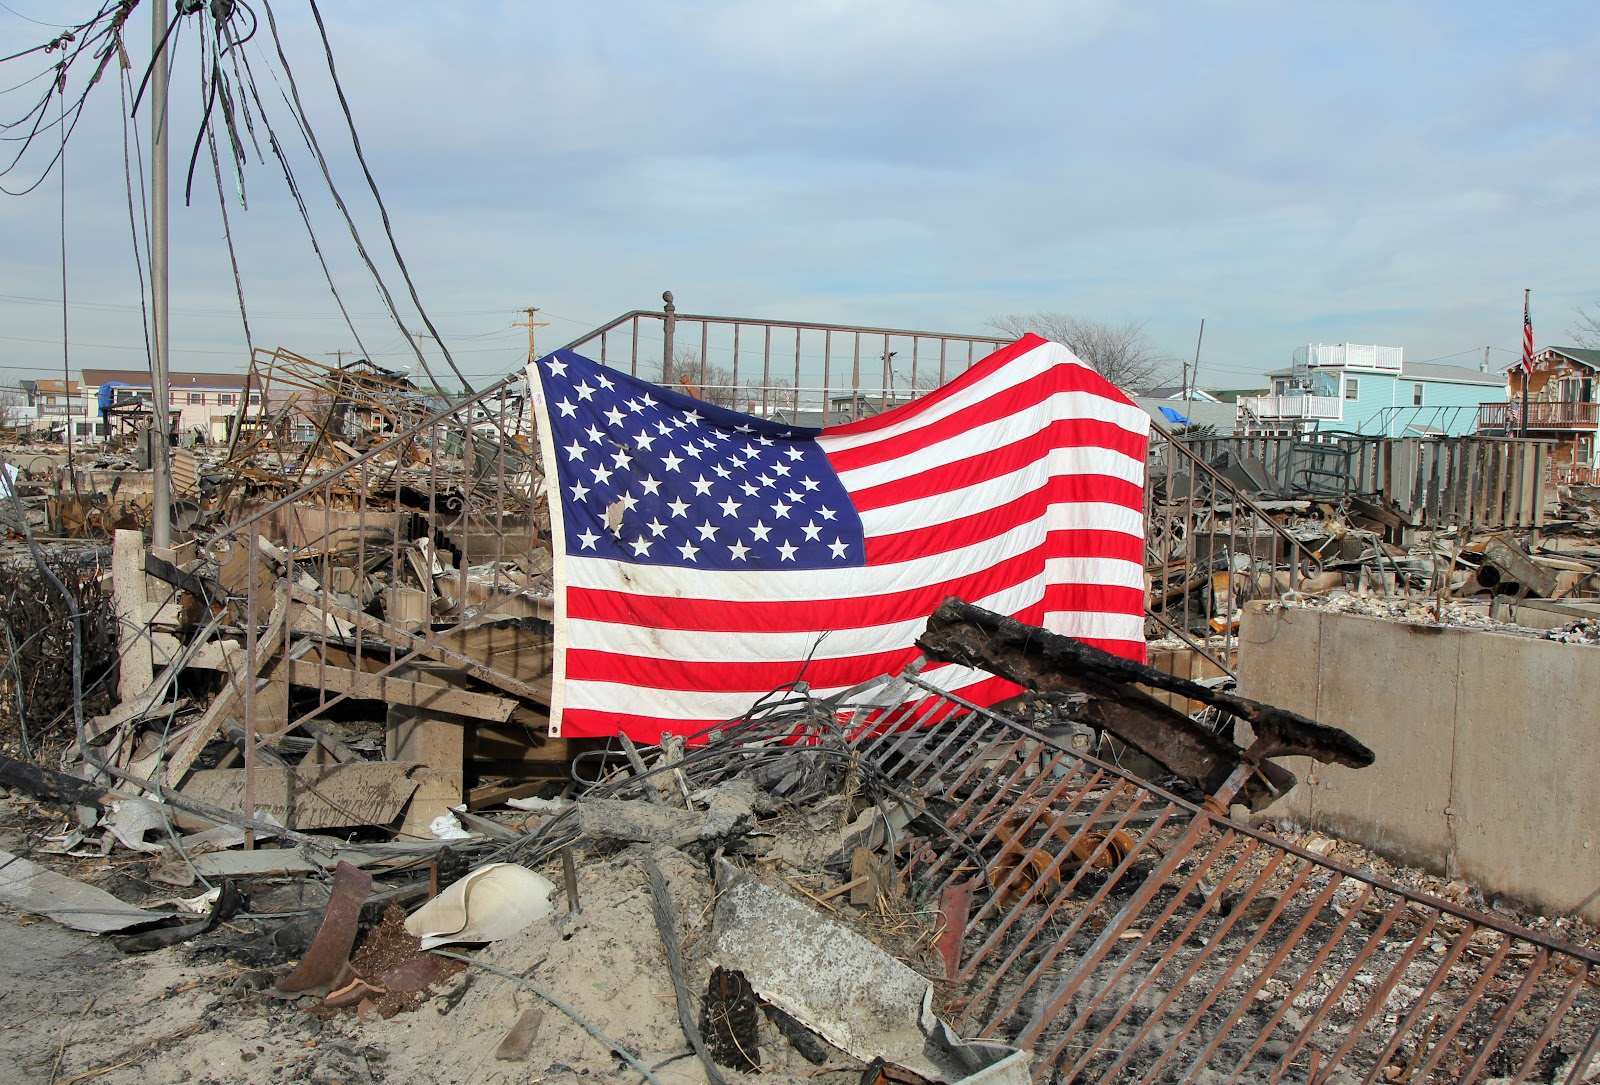 The American flag displayed on top of a pile of wreckage